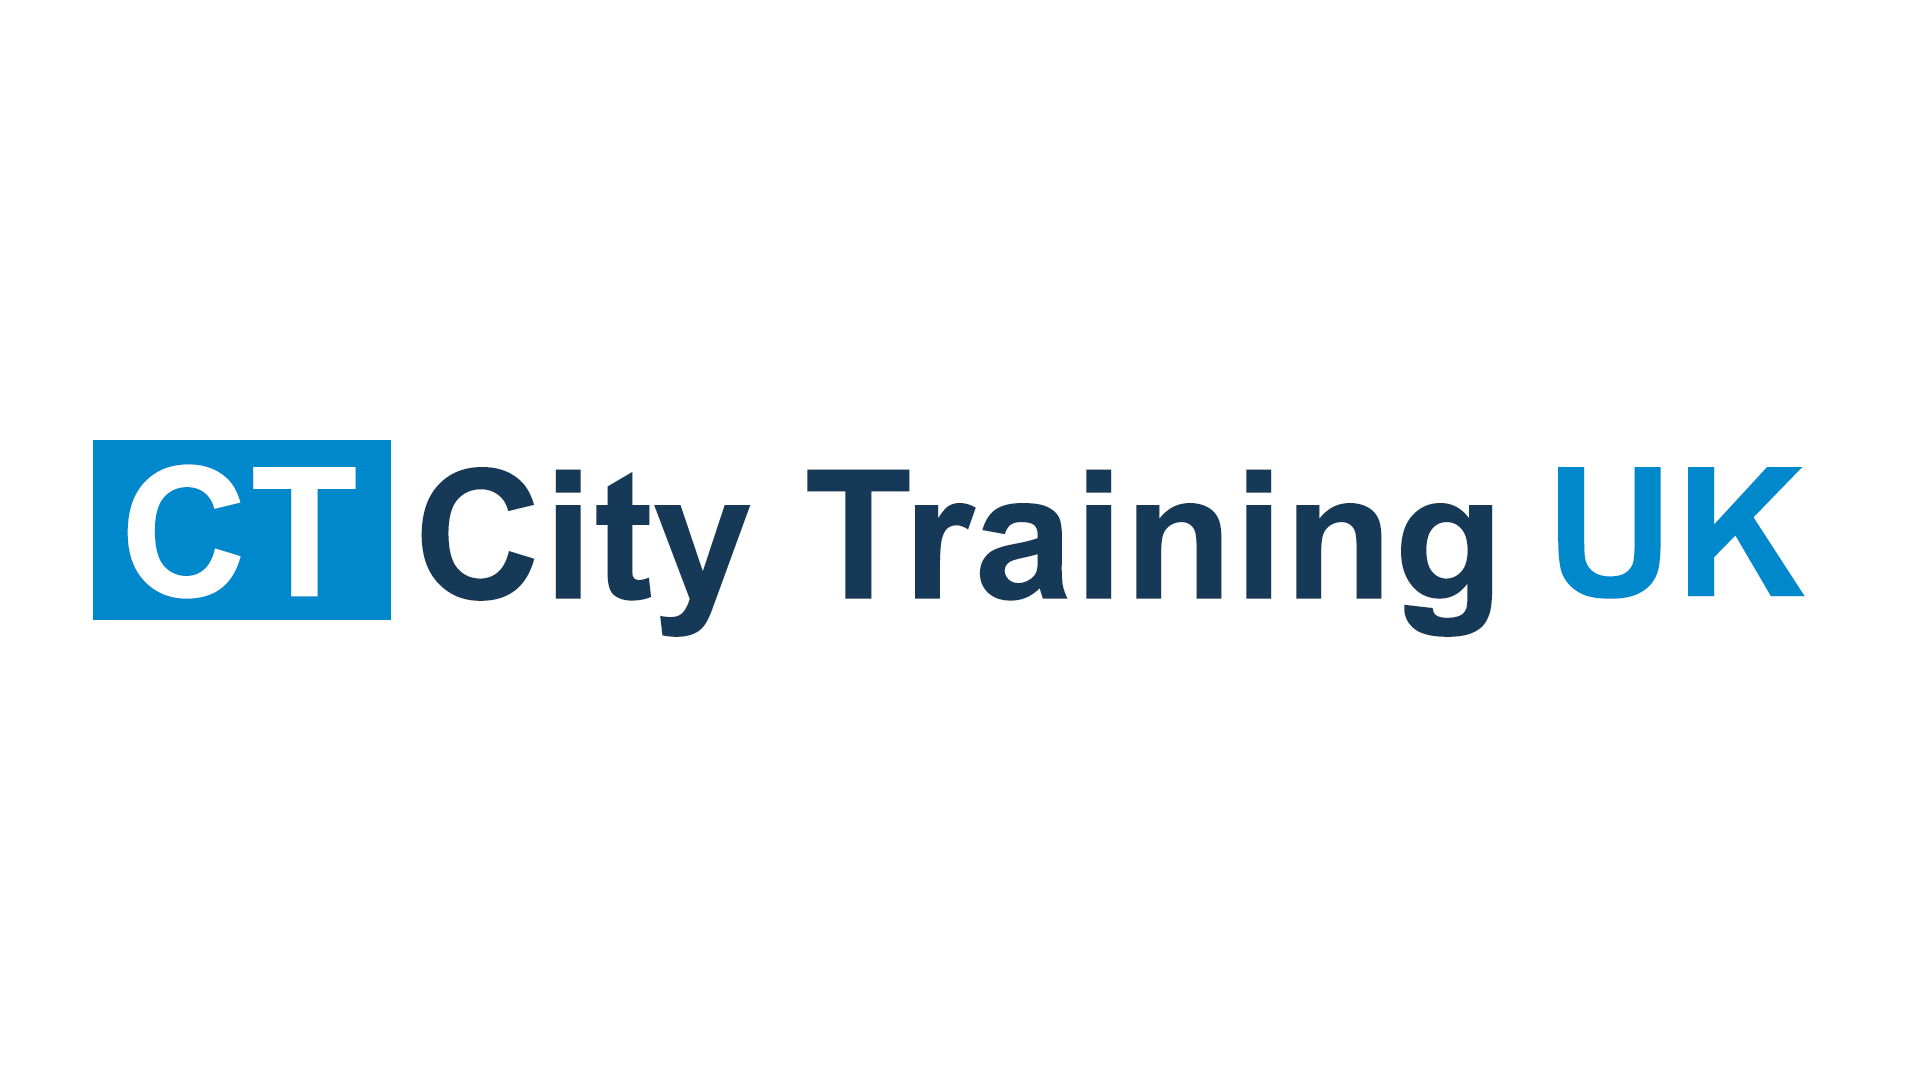 More about City Training Uk